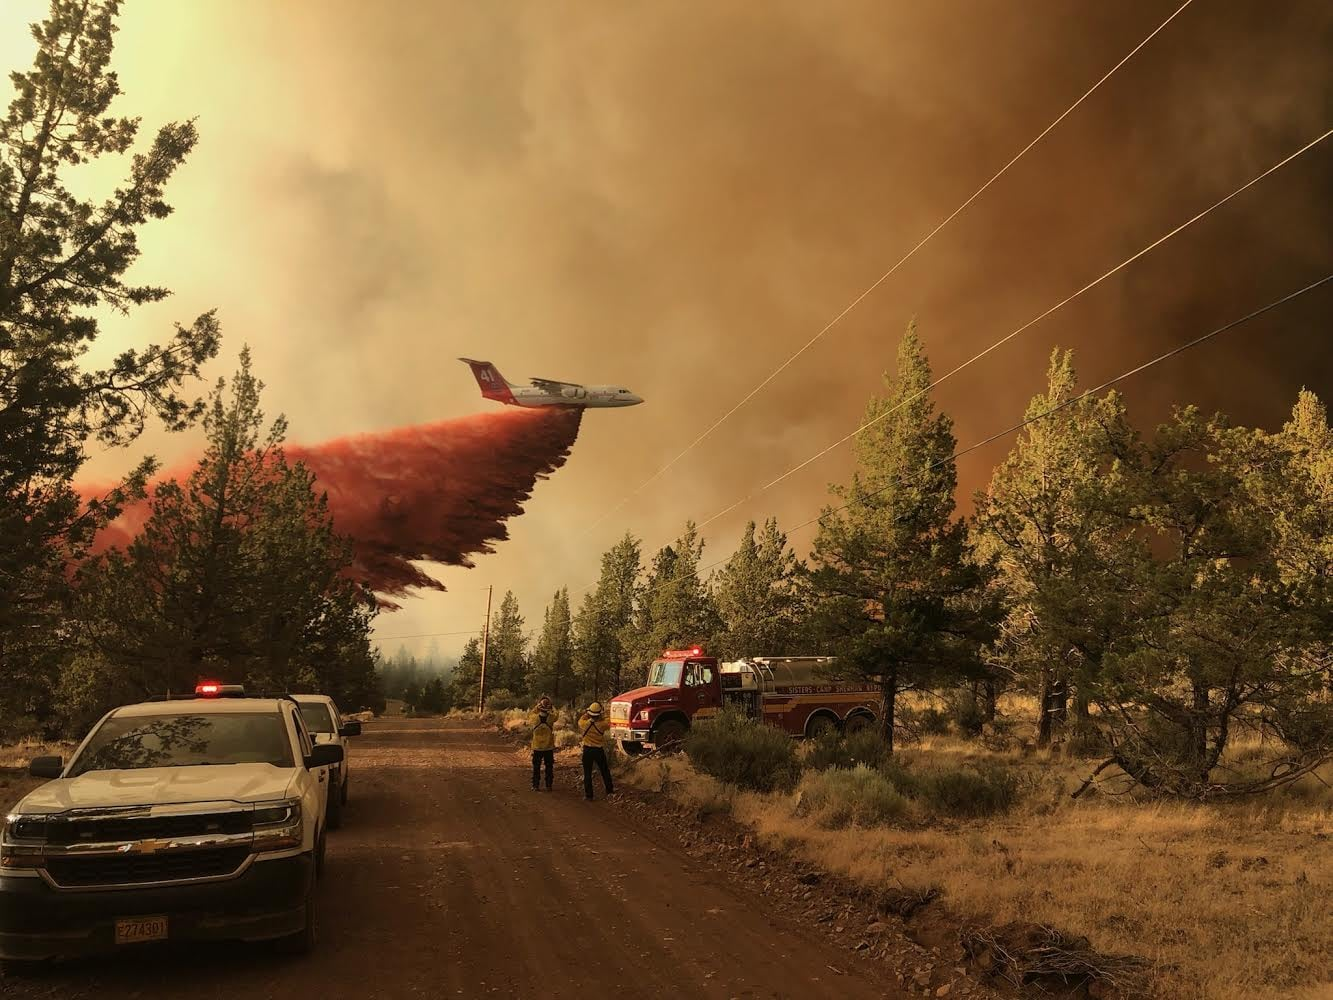 An airplane drops a large plume of reddish pink fire retardant as it flies over trees. A fire truck and police vehicle are in the foreground. Dark heavy wildfire smoke fills much of the sky.